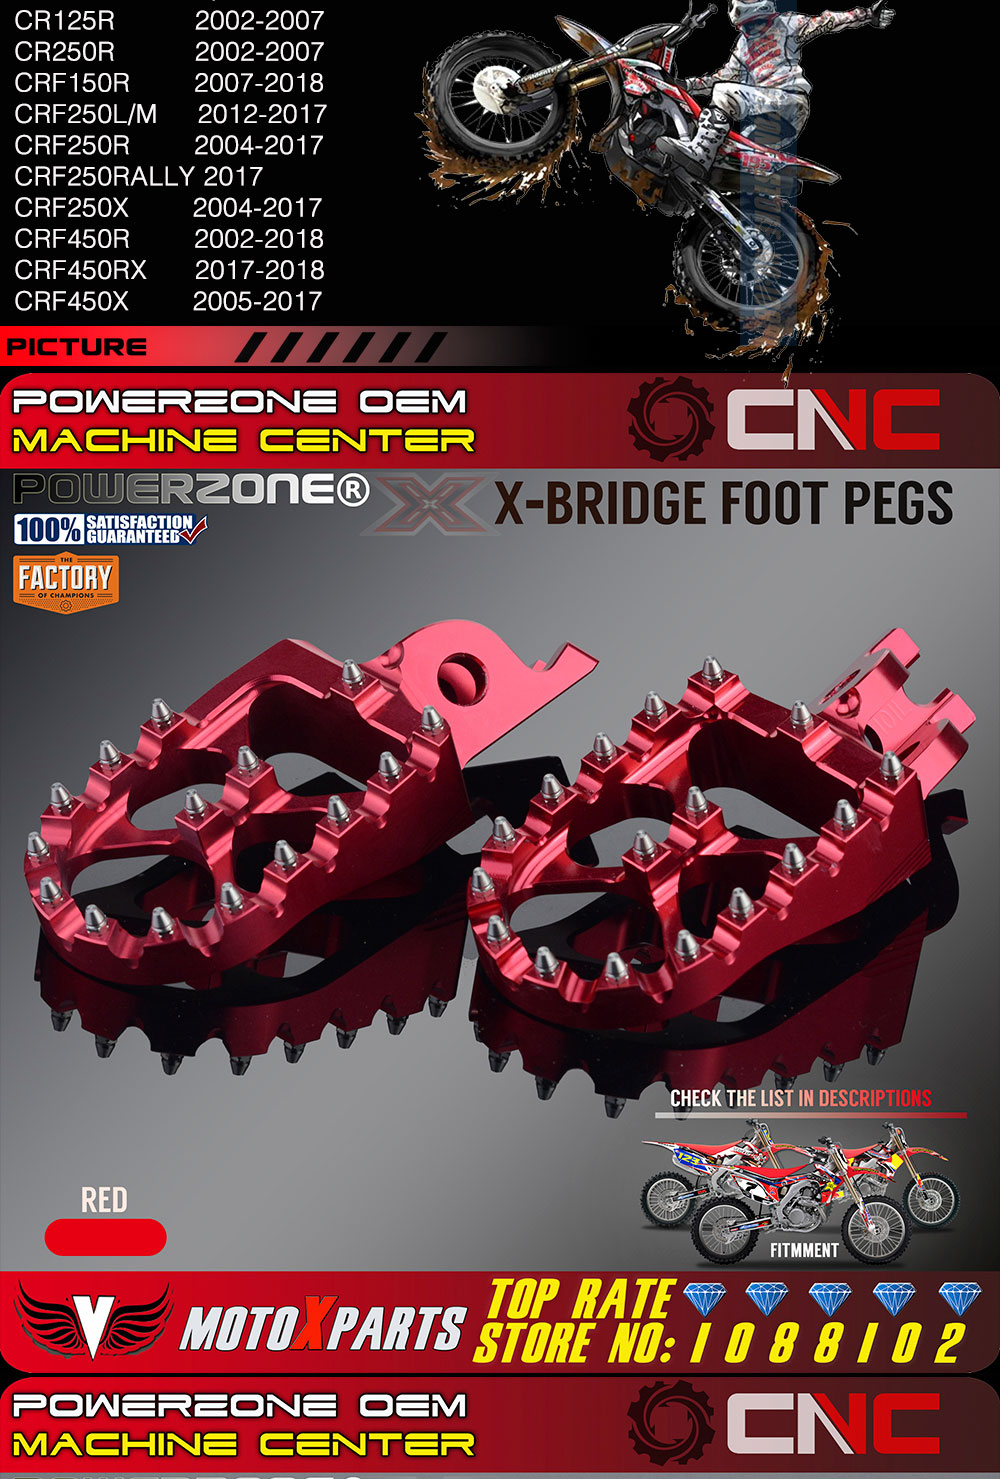 Billet MX Wide Foot Pegs Rests Pedals X Bridge CR125 /250 CRF450X CRF230F  CRF250R L M CRF250X CRF450R Dirt Bike Motocross Enduro